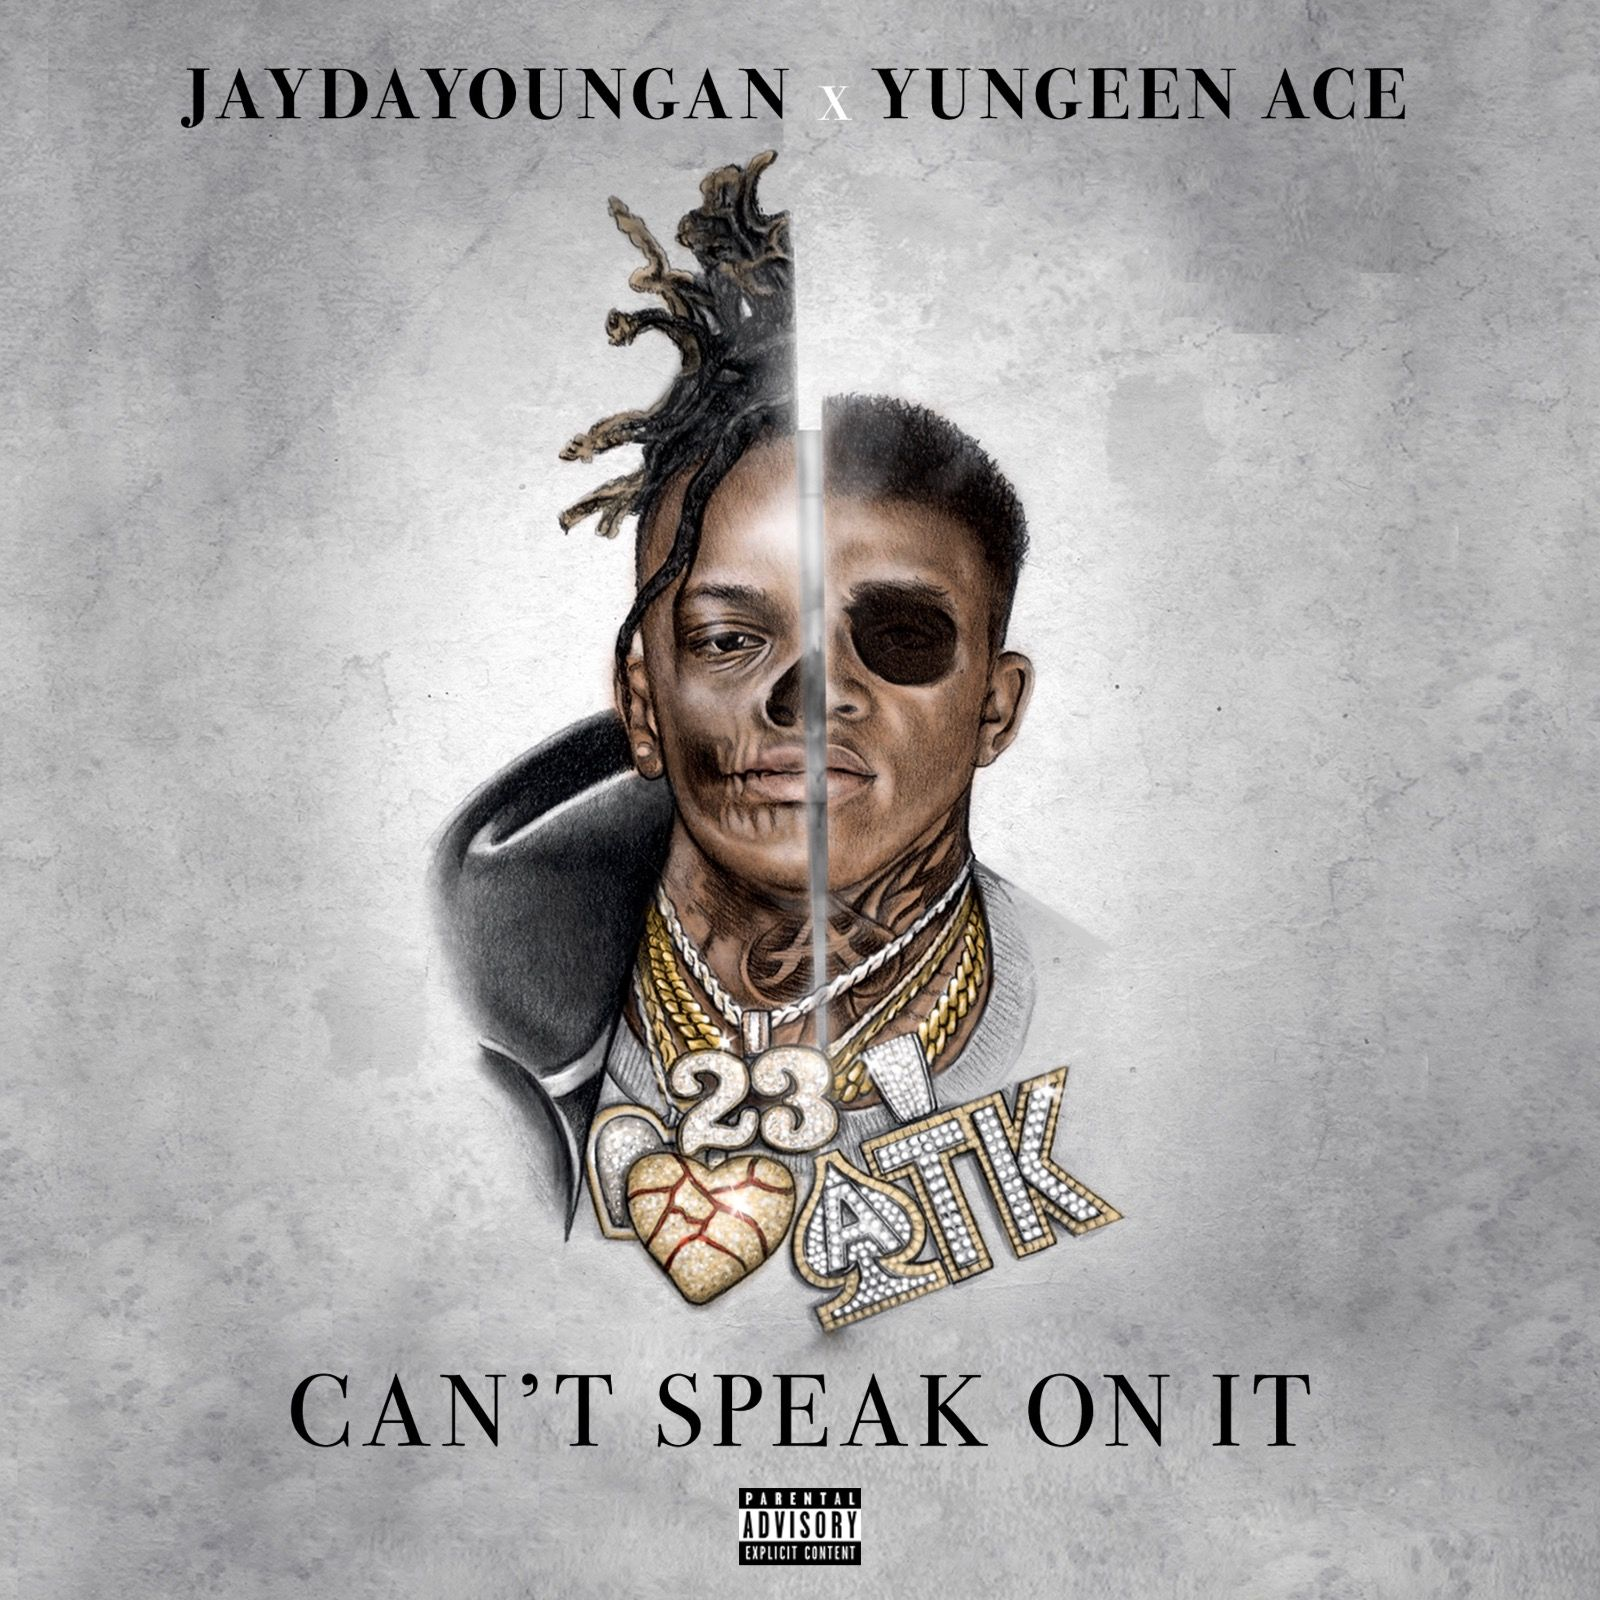 Can't Speak On It by JayDaYoungan & Yungeen Ace, from JayDaYoungan